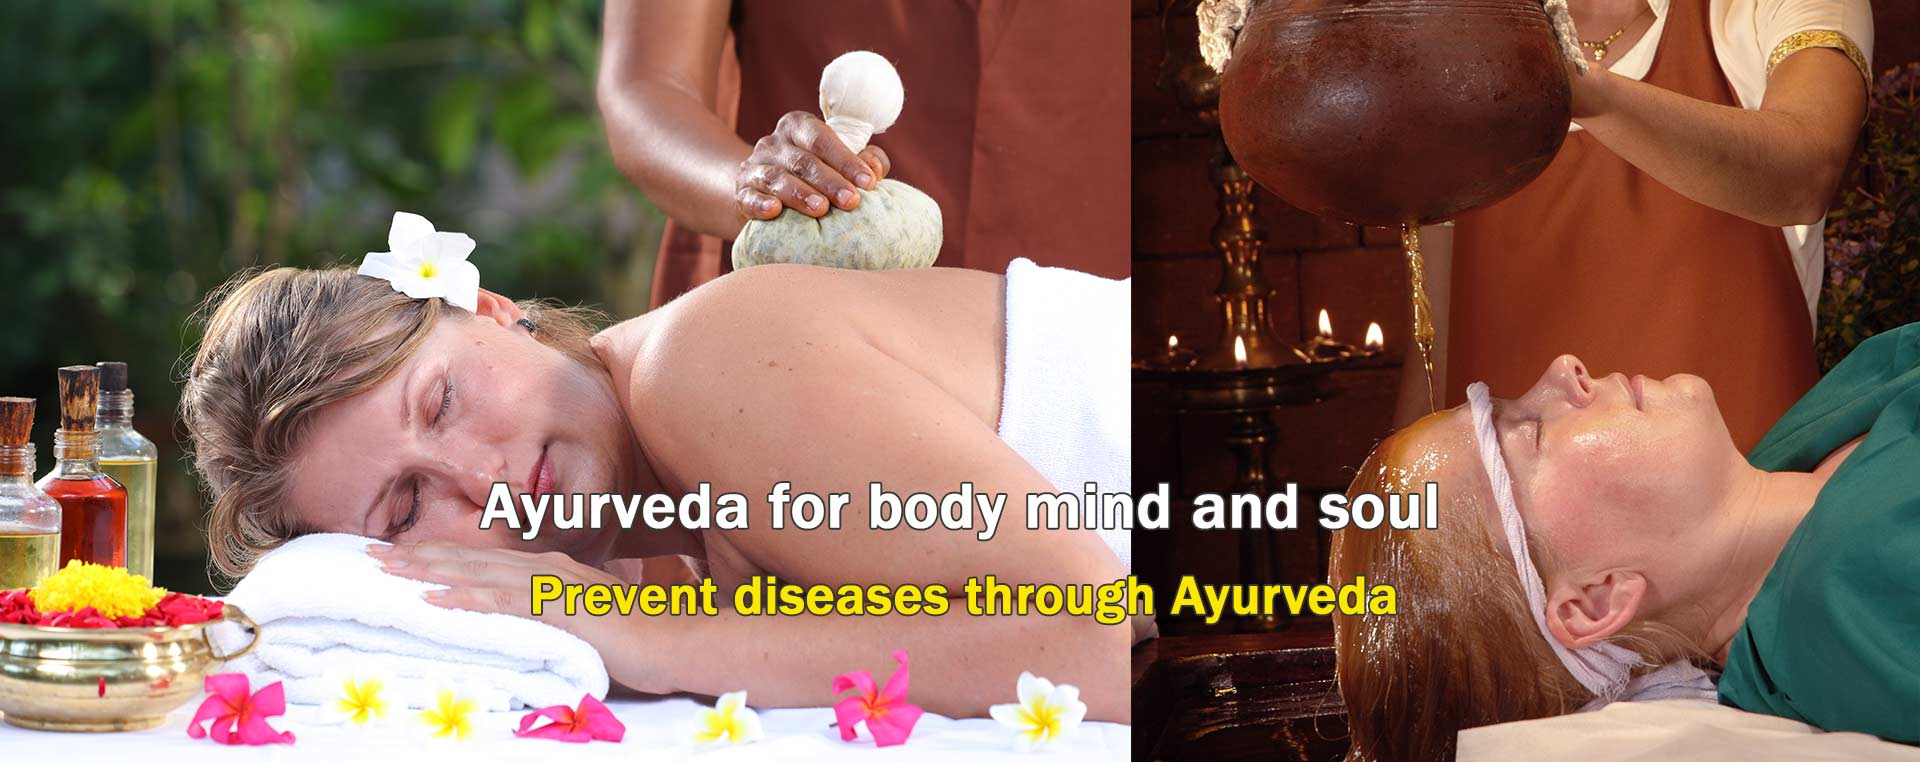 Ayurveda for body mind and soul